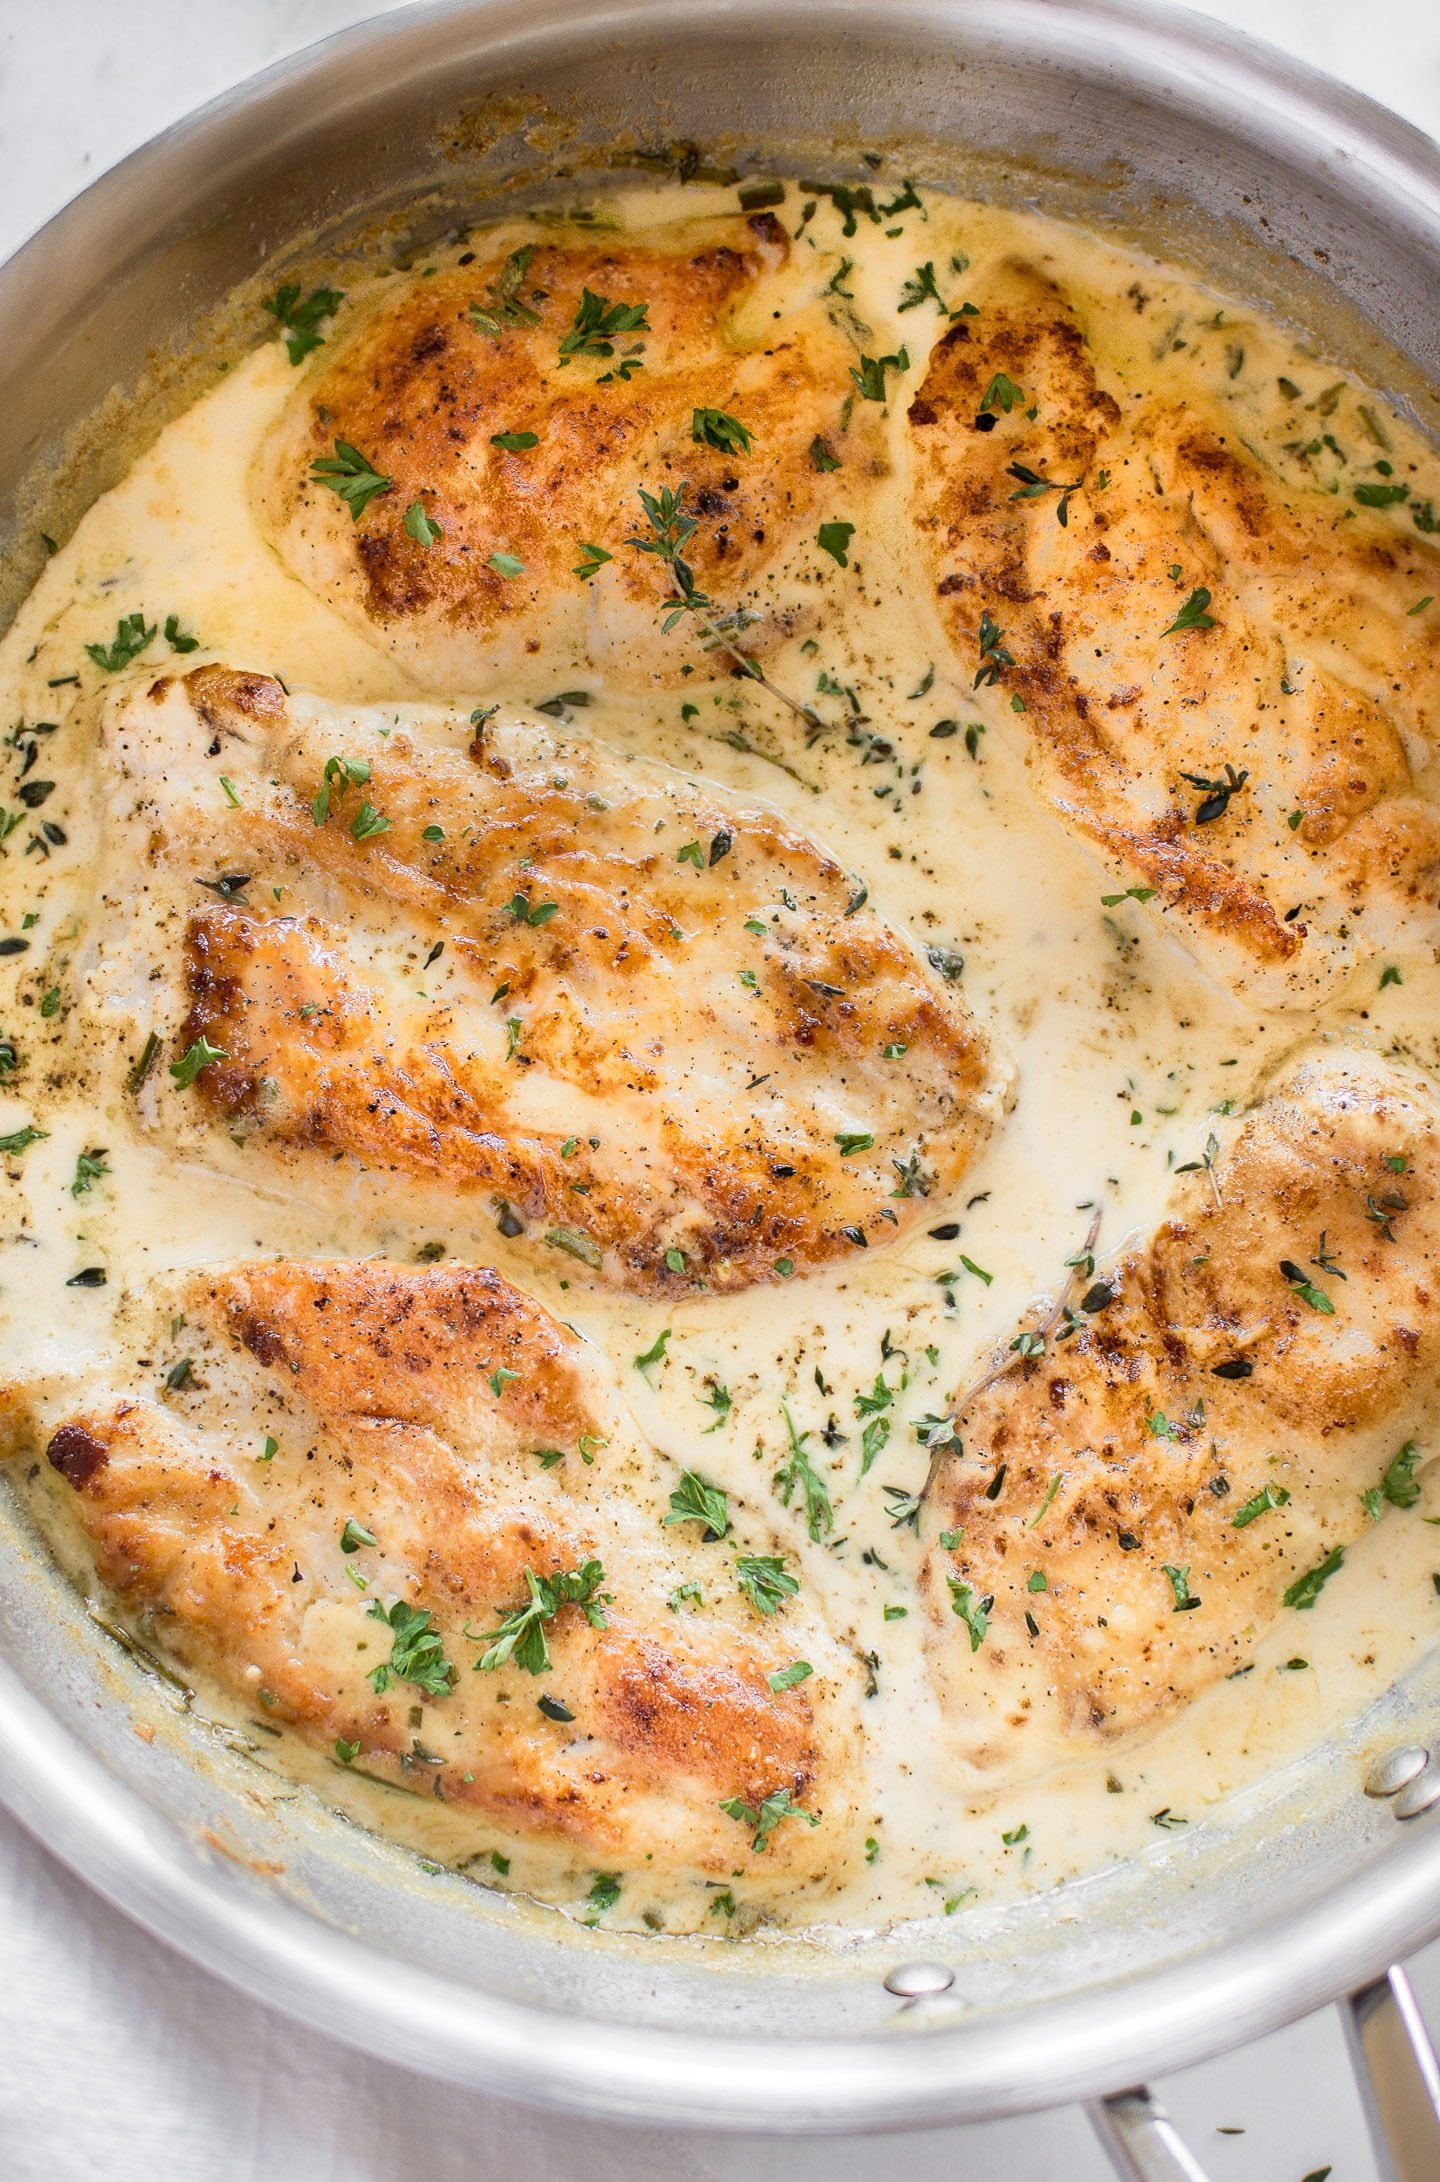 Tender chicken breasts smothered in a creamy herb sauce makes a simple and delicious comfort food dinner. Creamy herb chicken is great served over potatoes or pasta!